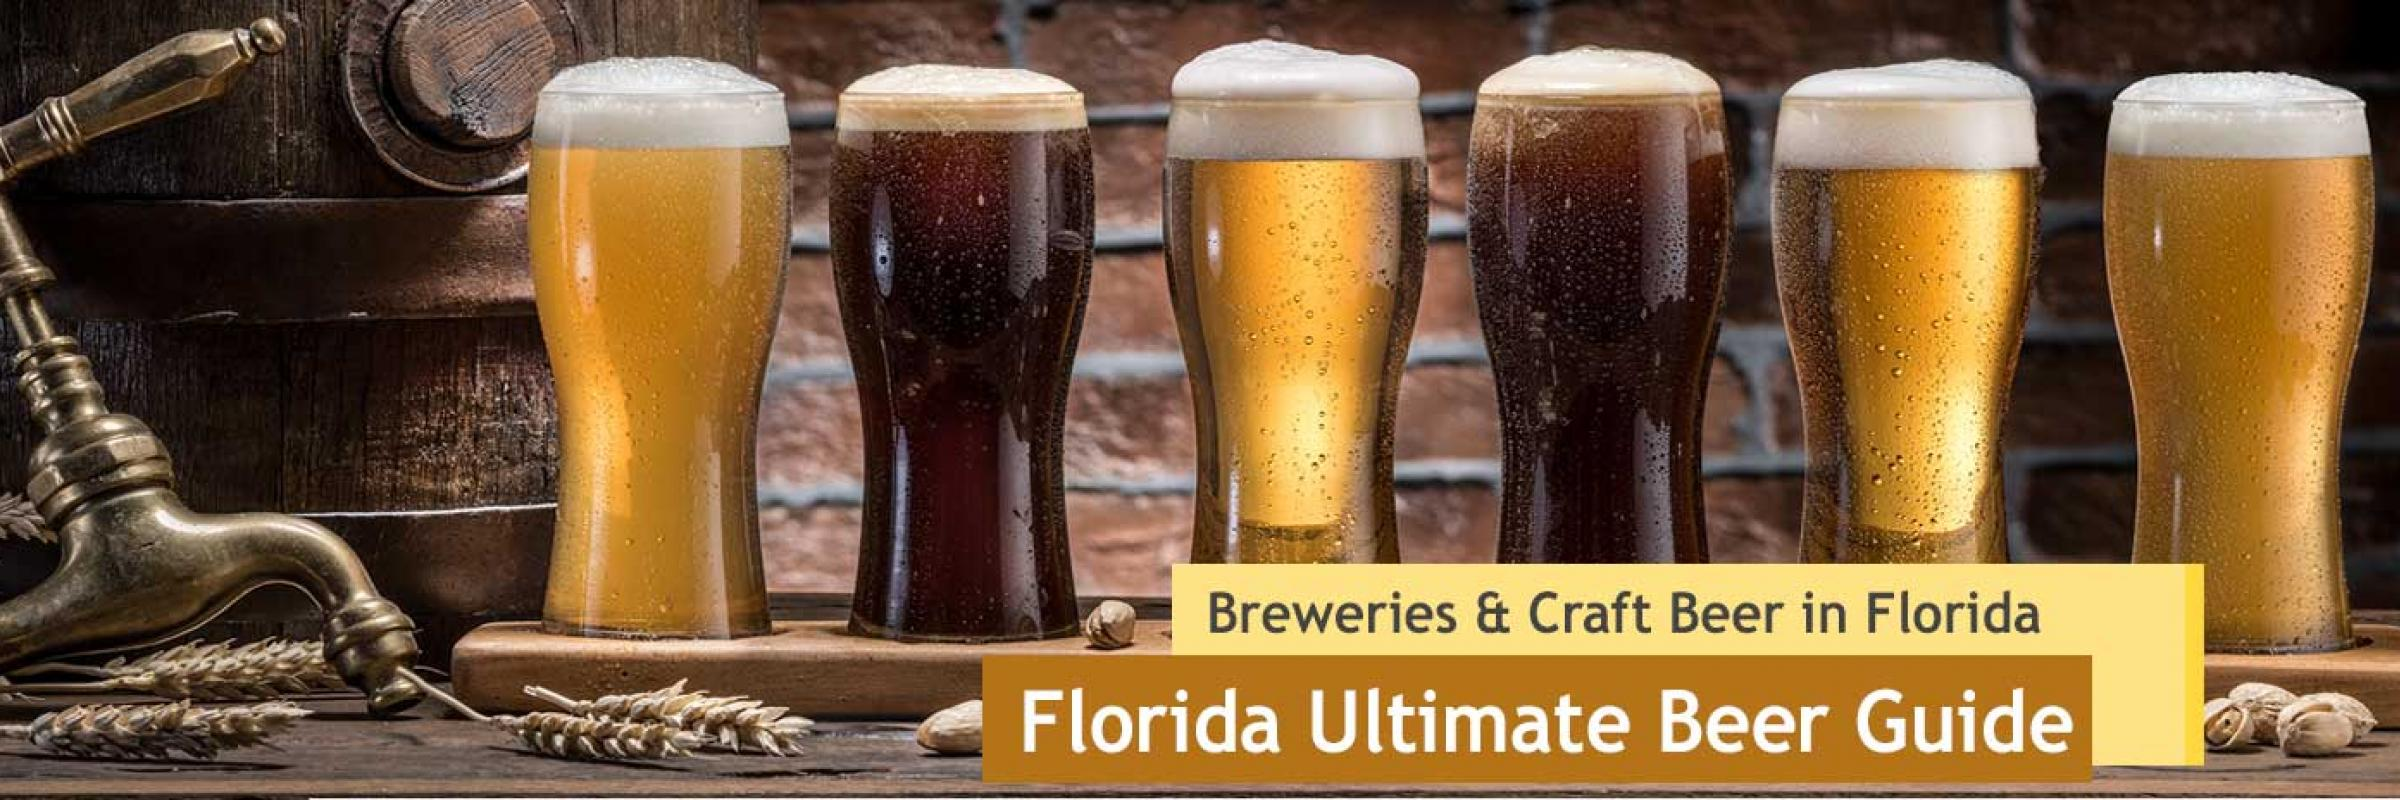 Florida Ultimate Beer Guide